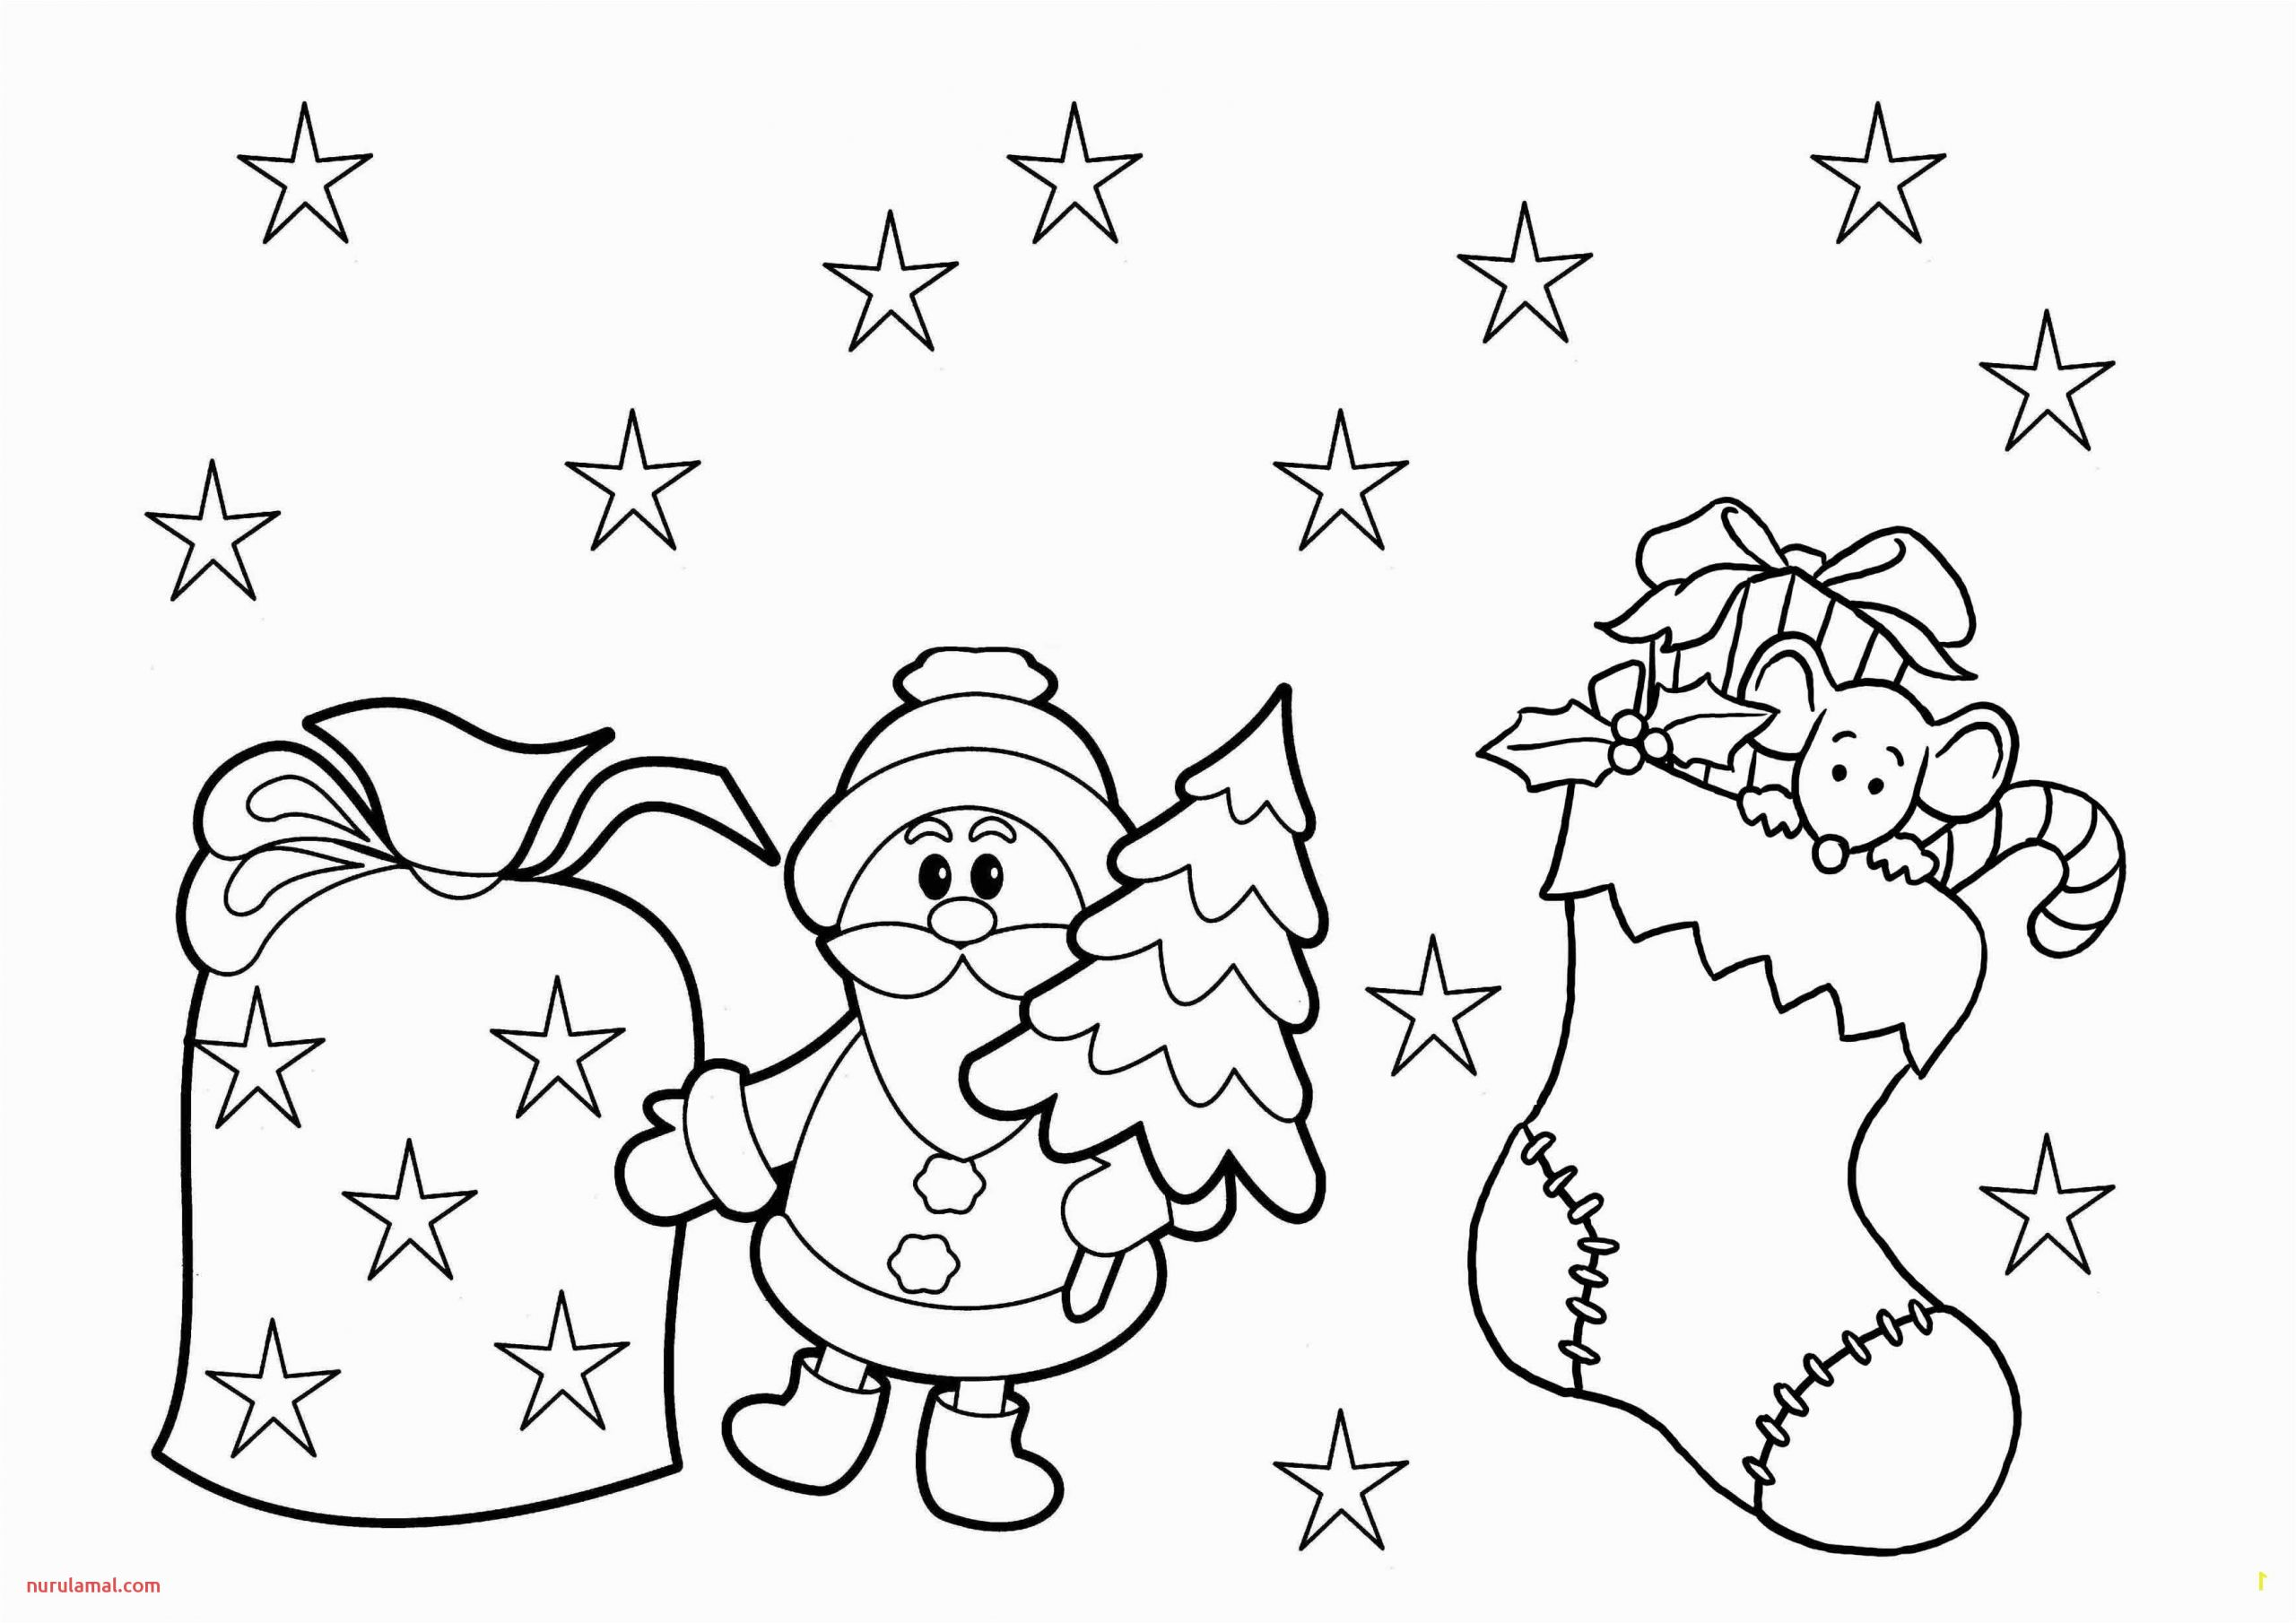 printable wwe coloring page new images fresh printable coloring pages wwe jvzooreview of printable wwe coloring page